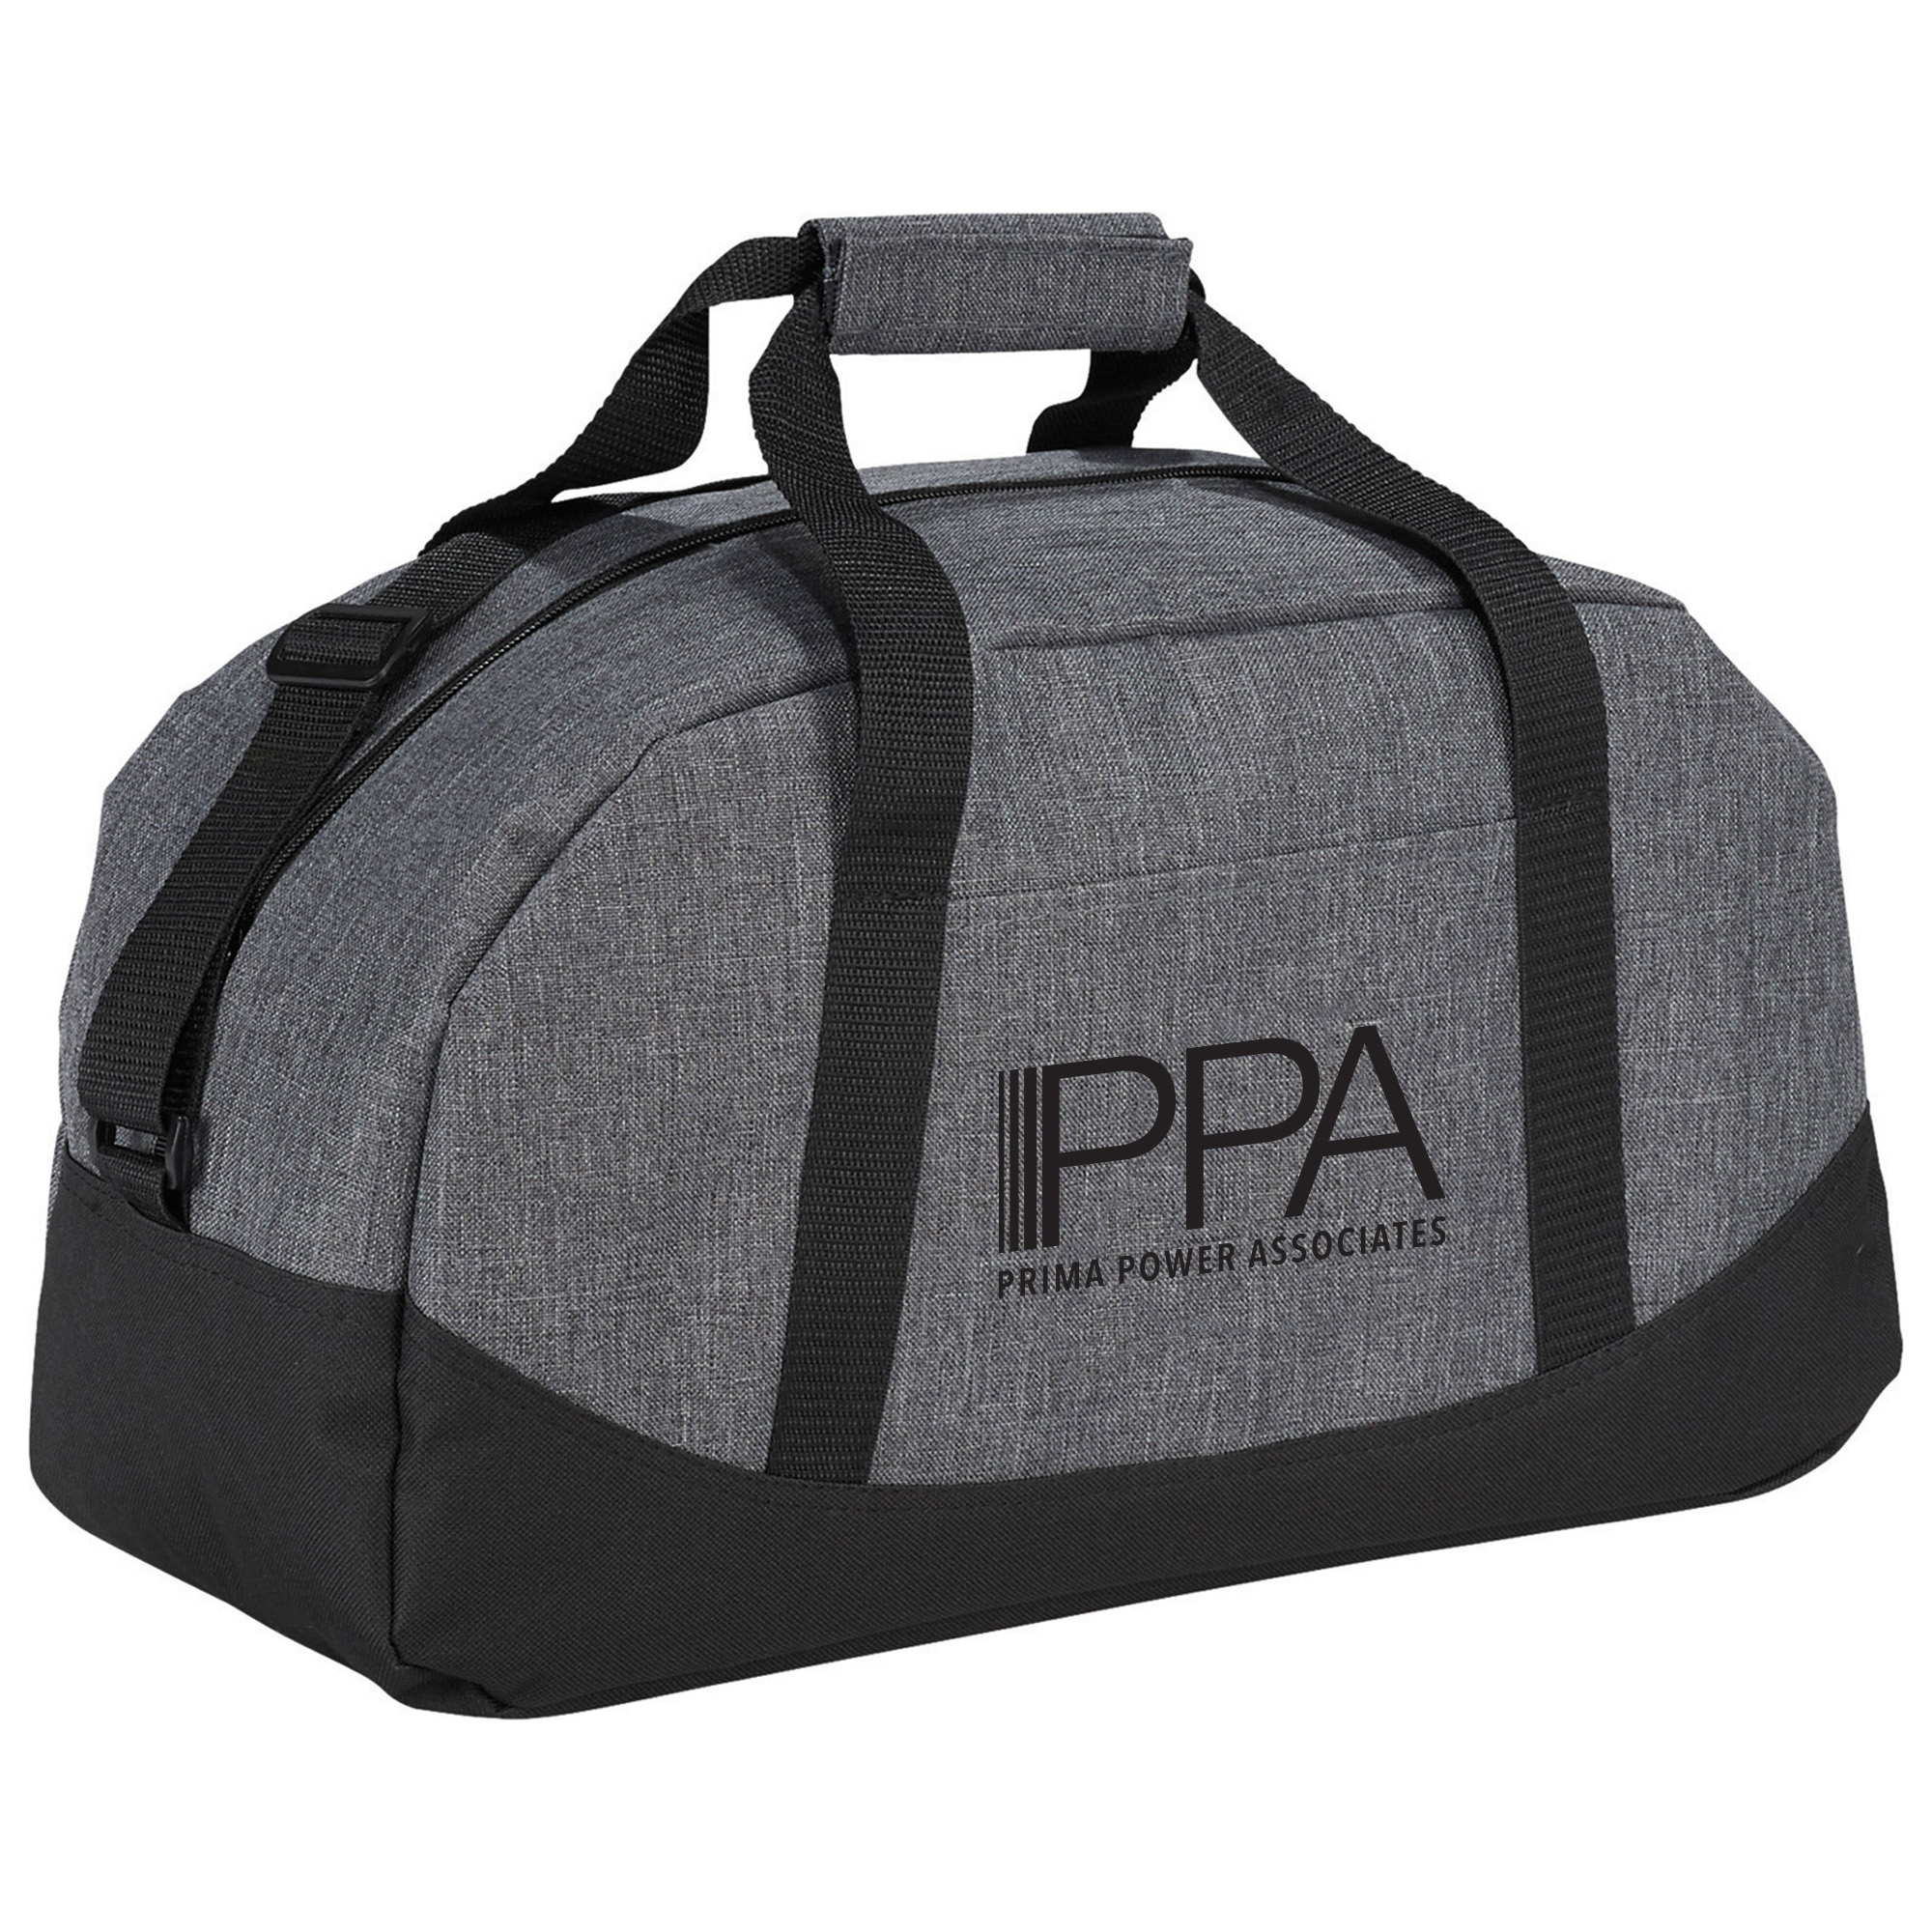 Graphite Polycanvas Gym Duffel Bag, 18""